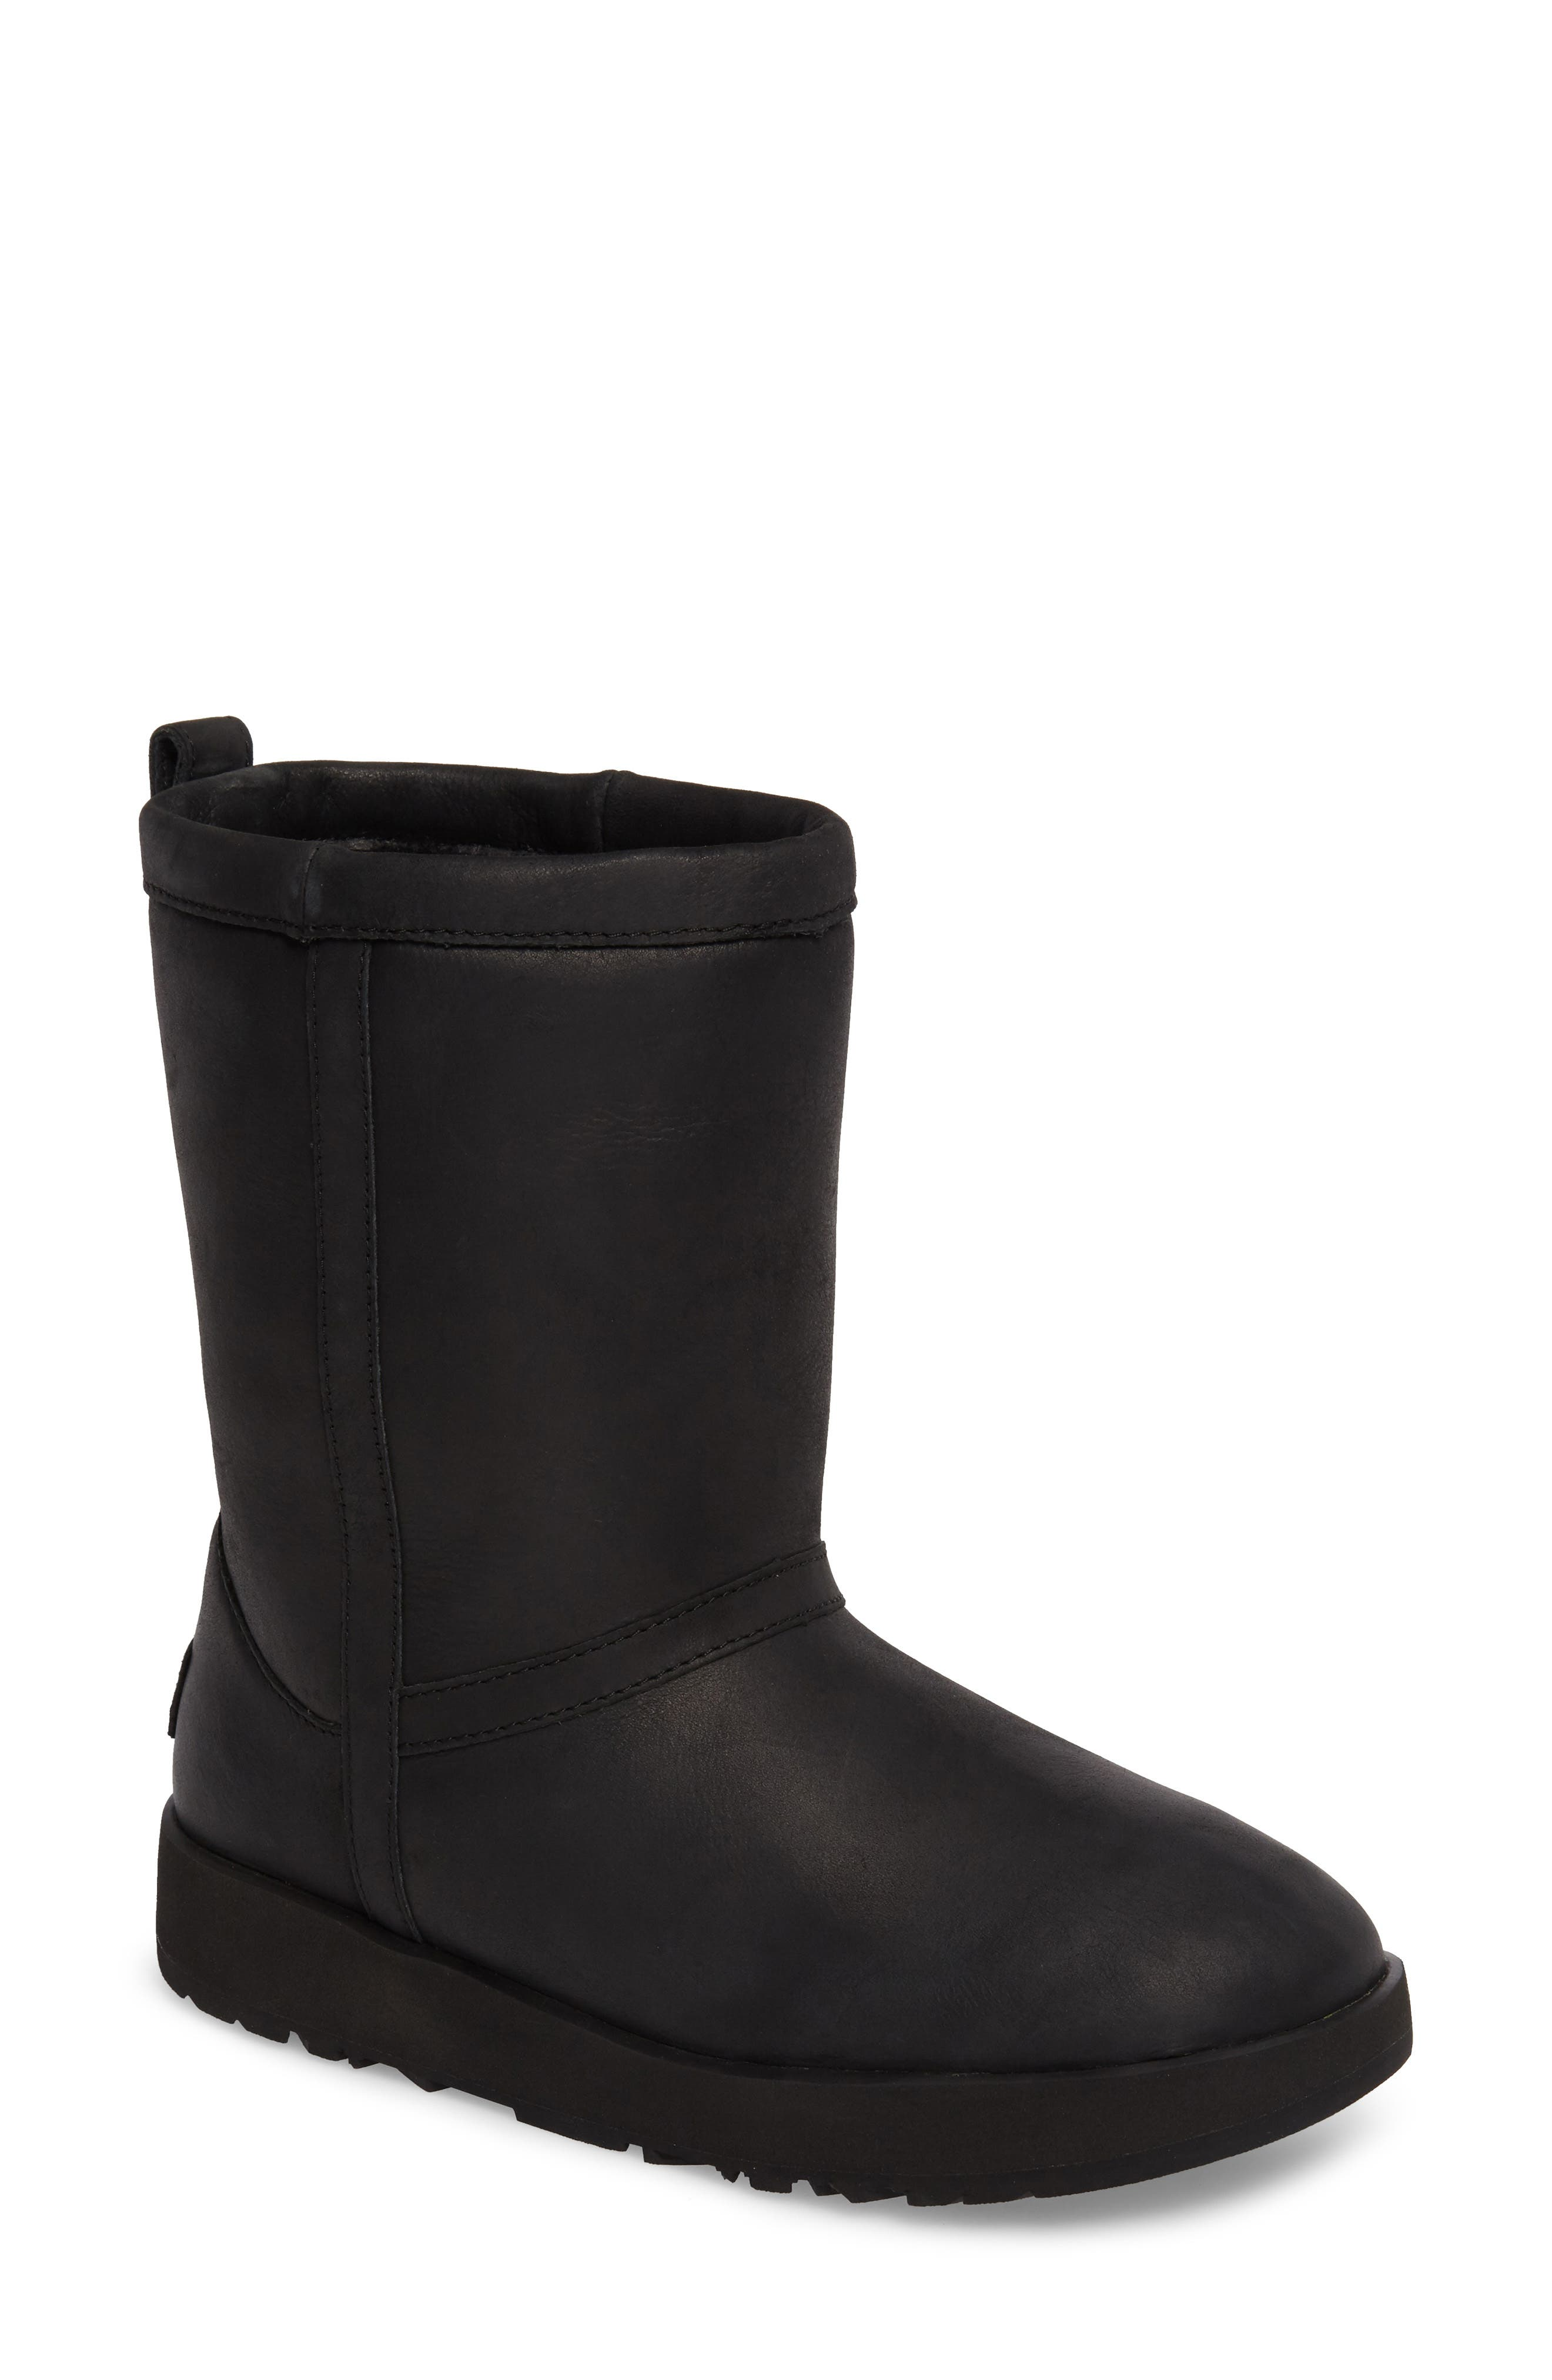 Classic Genuine Shearling Lined Short Waterproof Boot,                             Main thumbnail 1, color,                             BLACK LEATHER